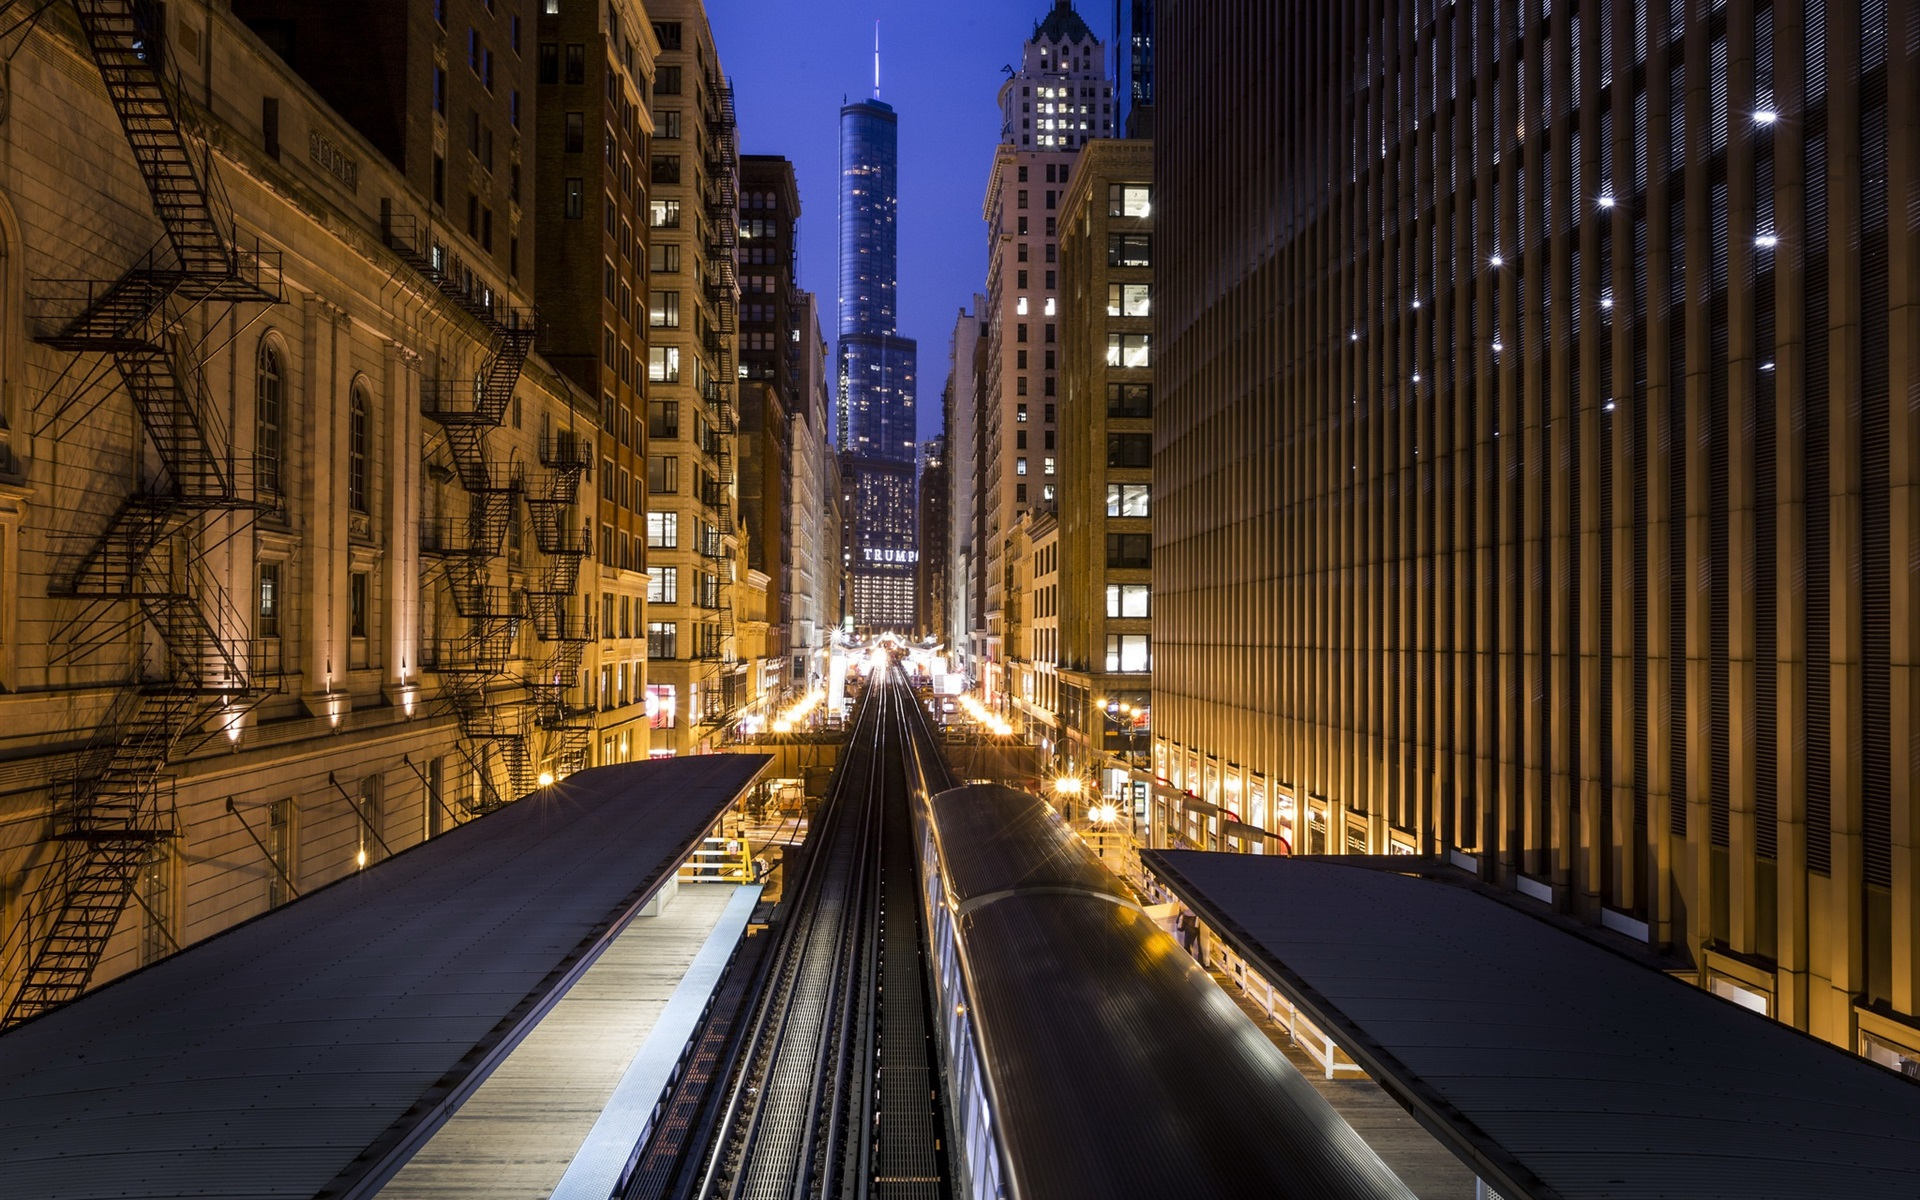 Must see Wallpaper Night Chicago - USA-Chicago-city-buildings-metro-night-lights_1920x1200  Image.jpg